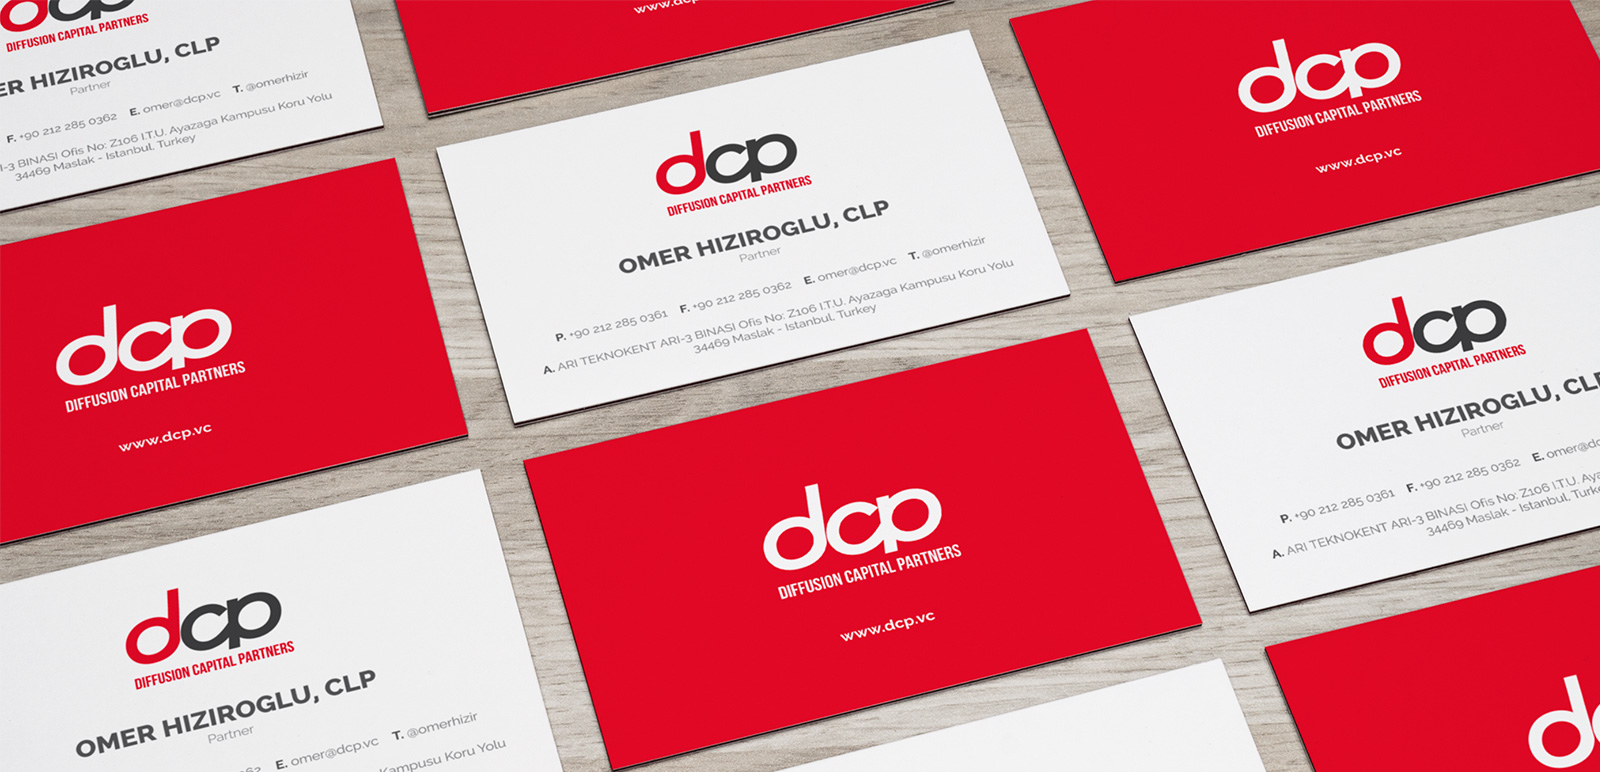 DCP Diffusion Capital Partners Logo, Business Card 2